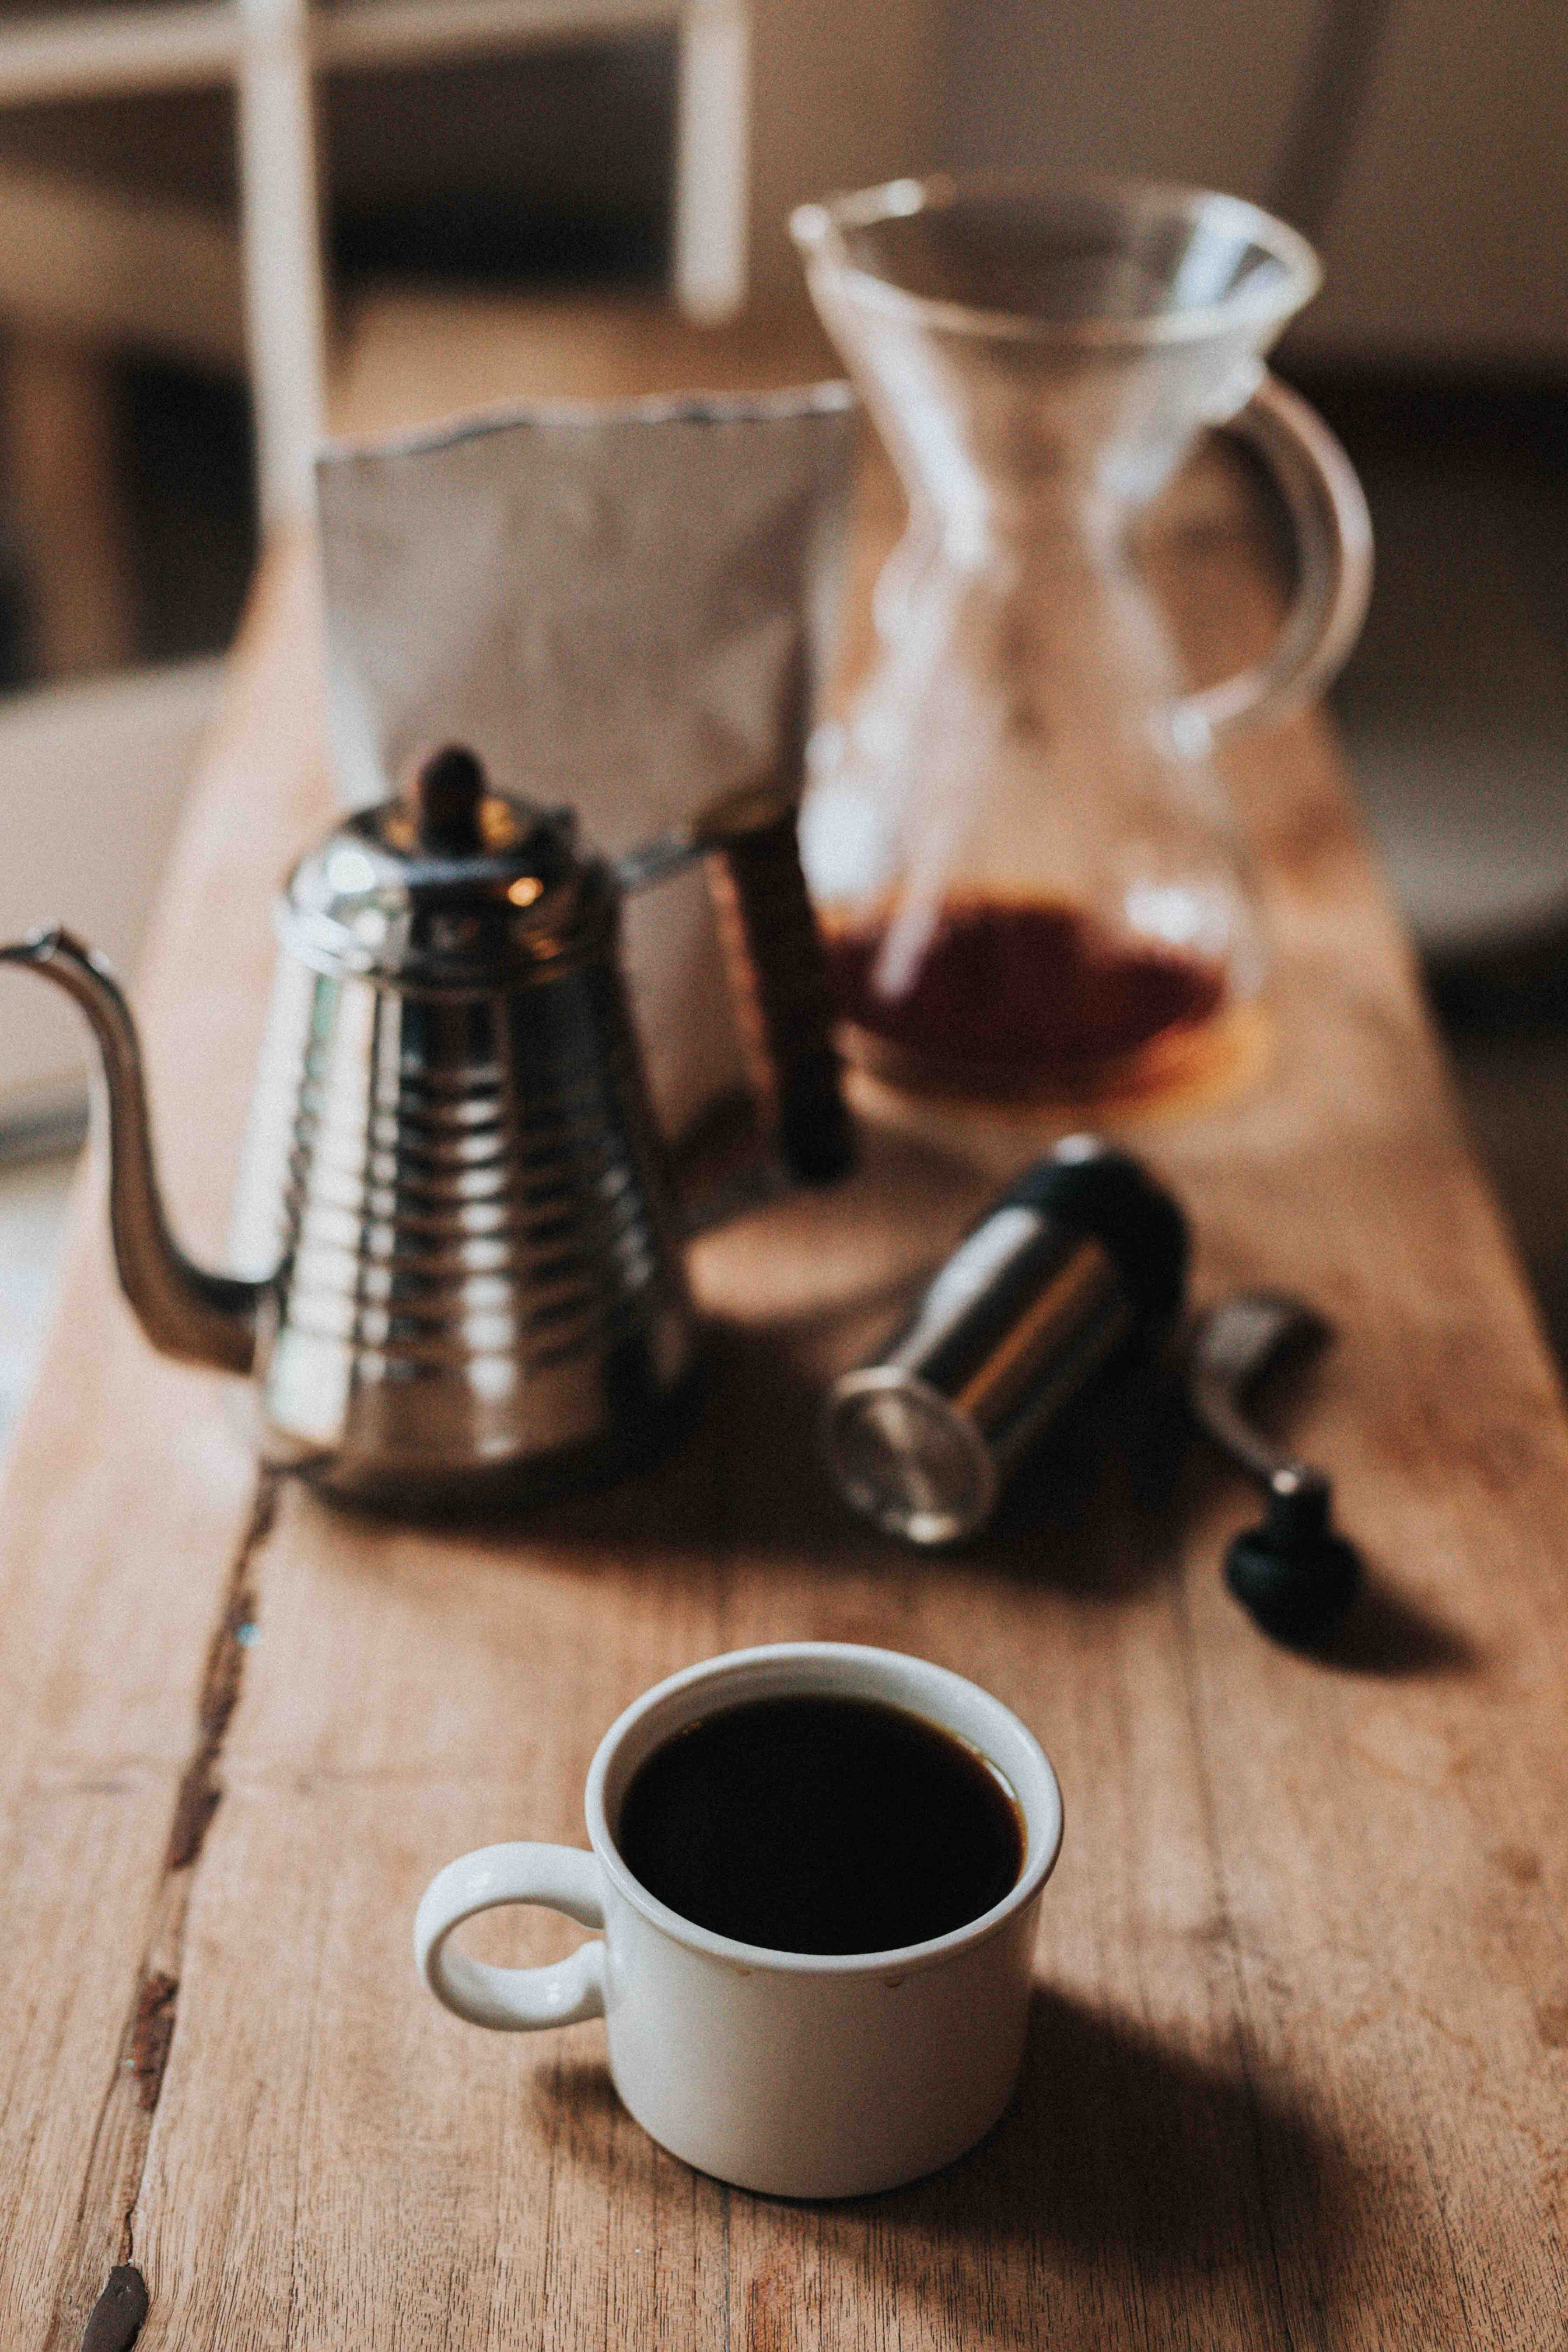 shallow focus photography of white coffee mug with black coffee on table